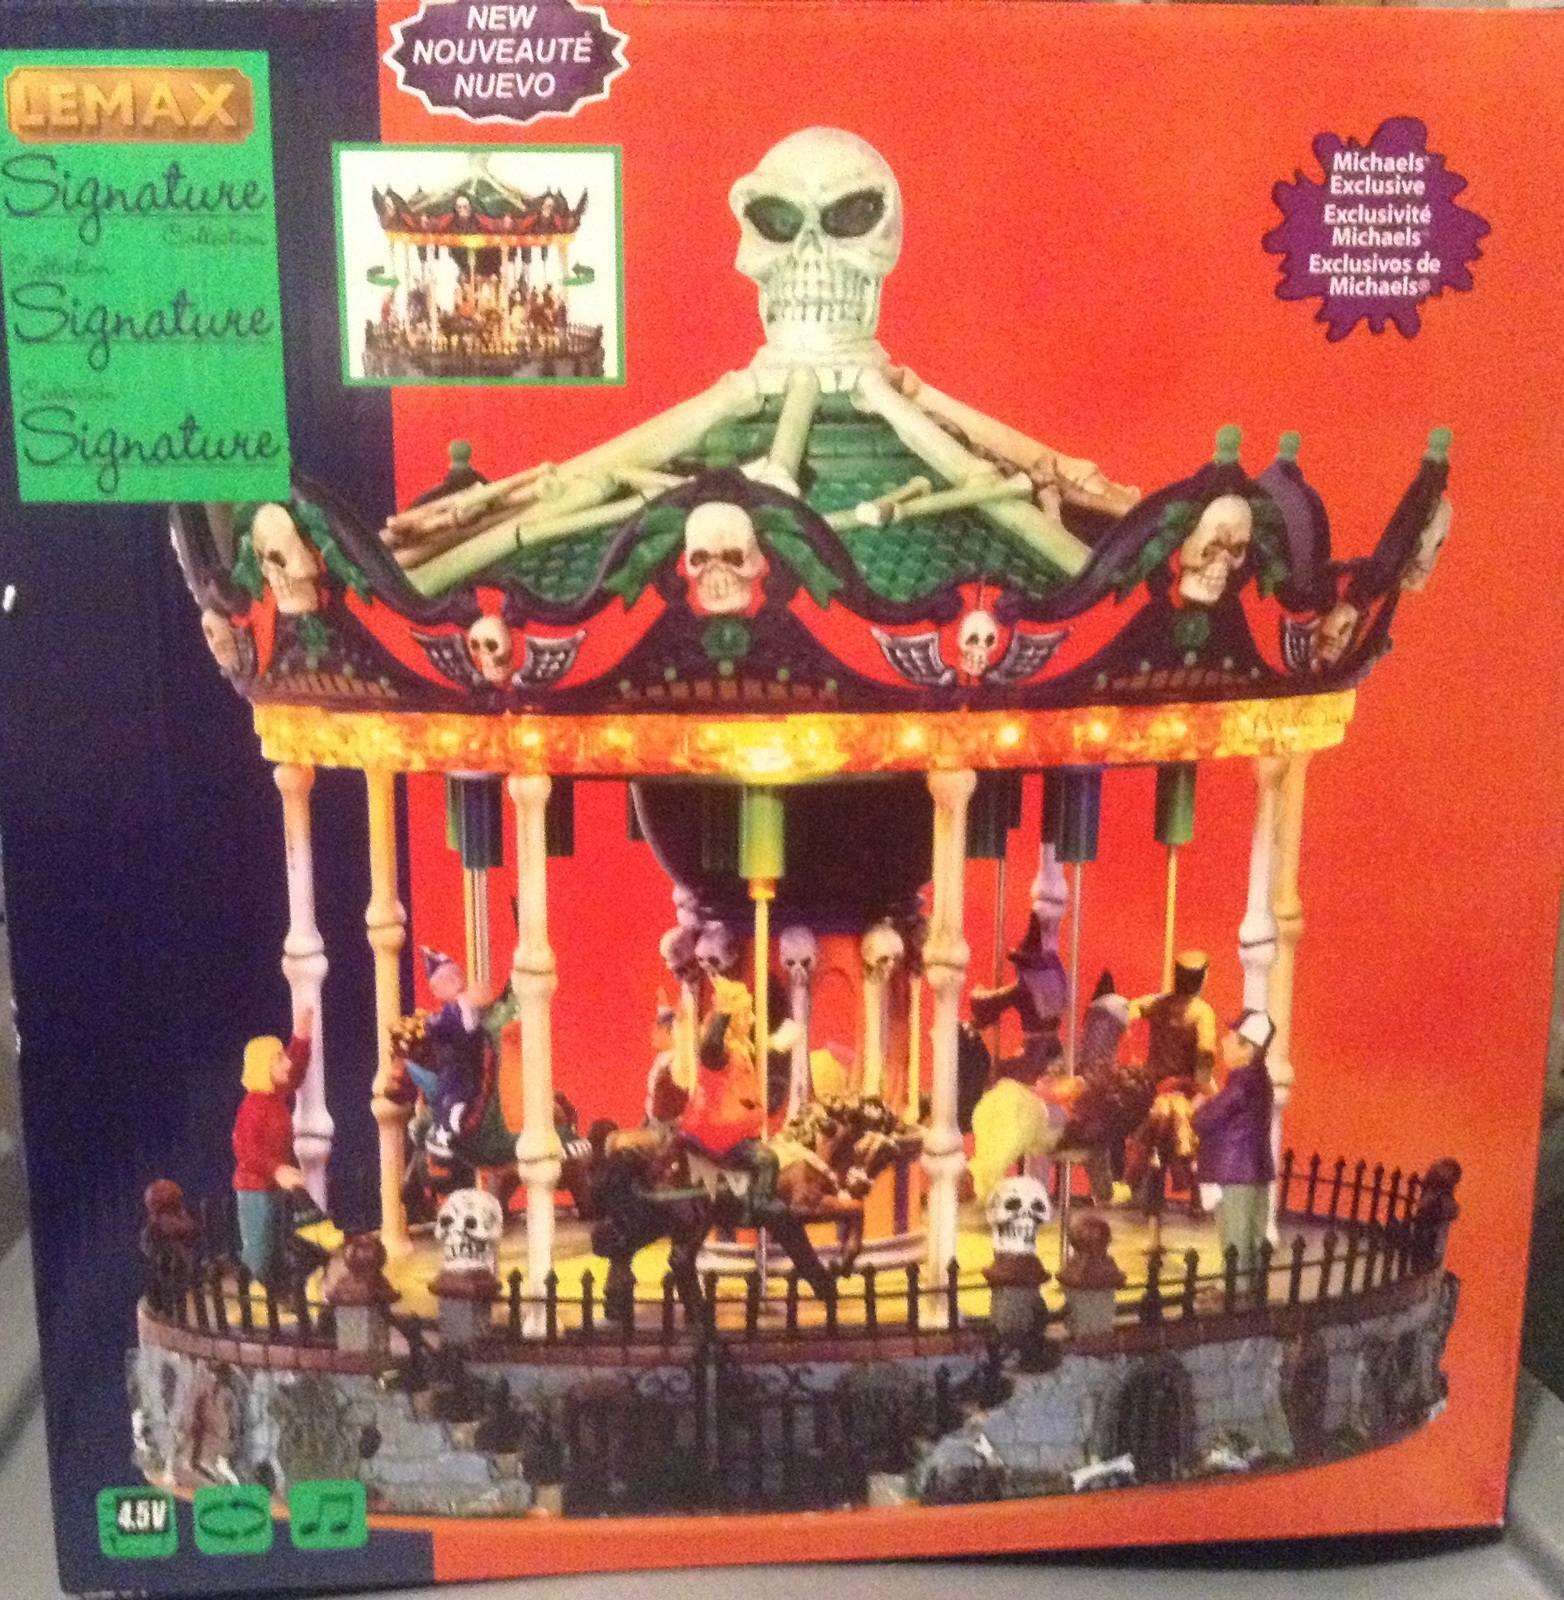 Lemax Halloween Spooky Town animated Scary-Go-Round Carousel Figure